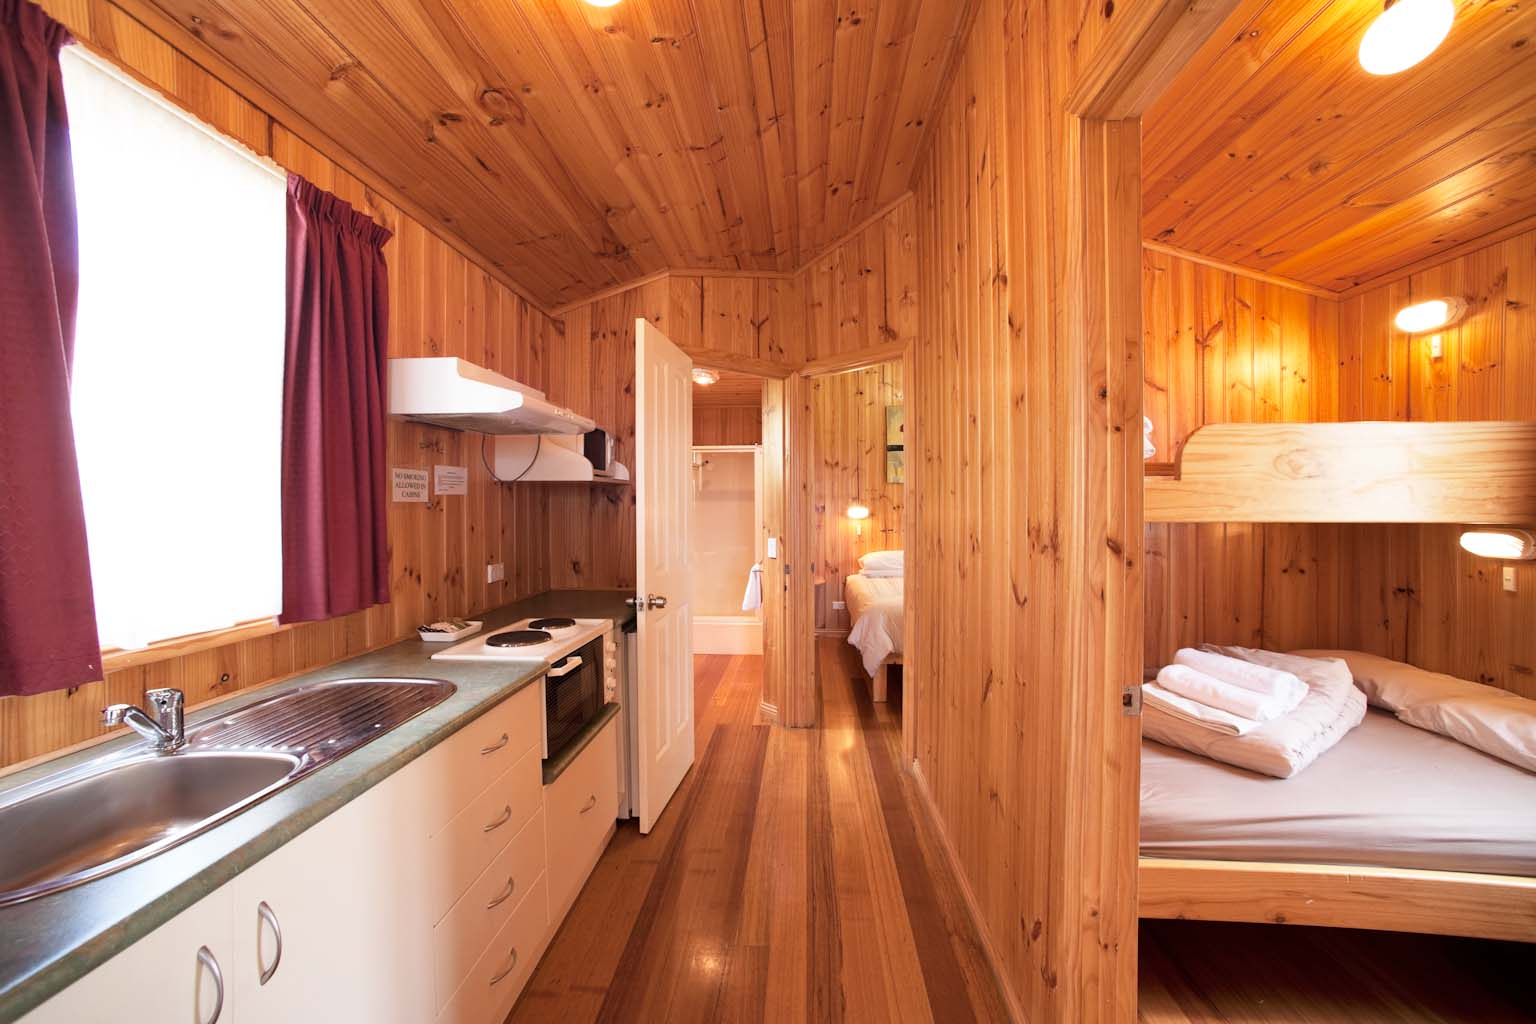 budget cabin accommodation